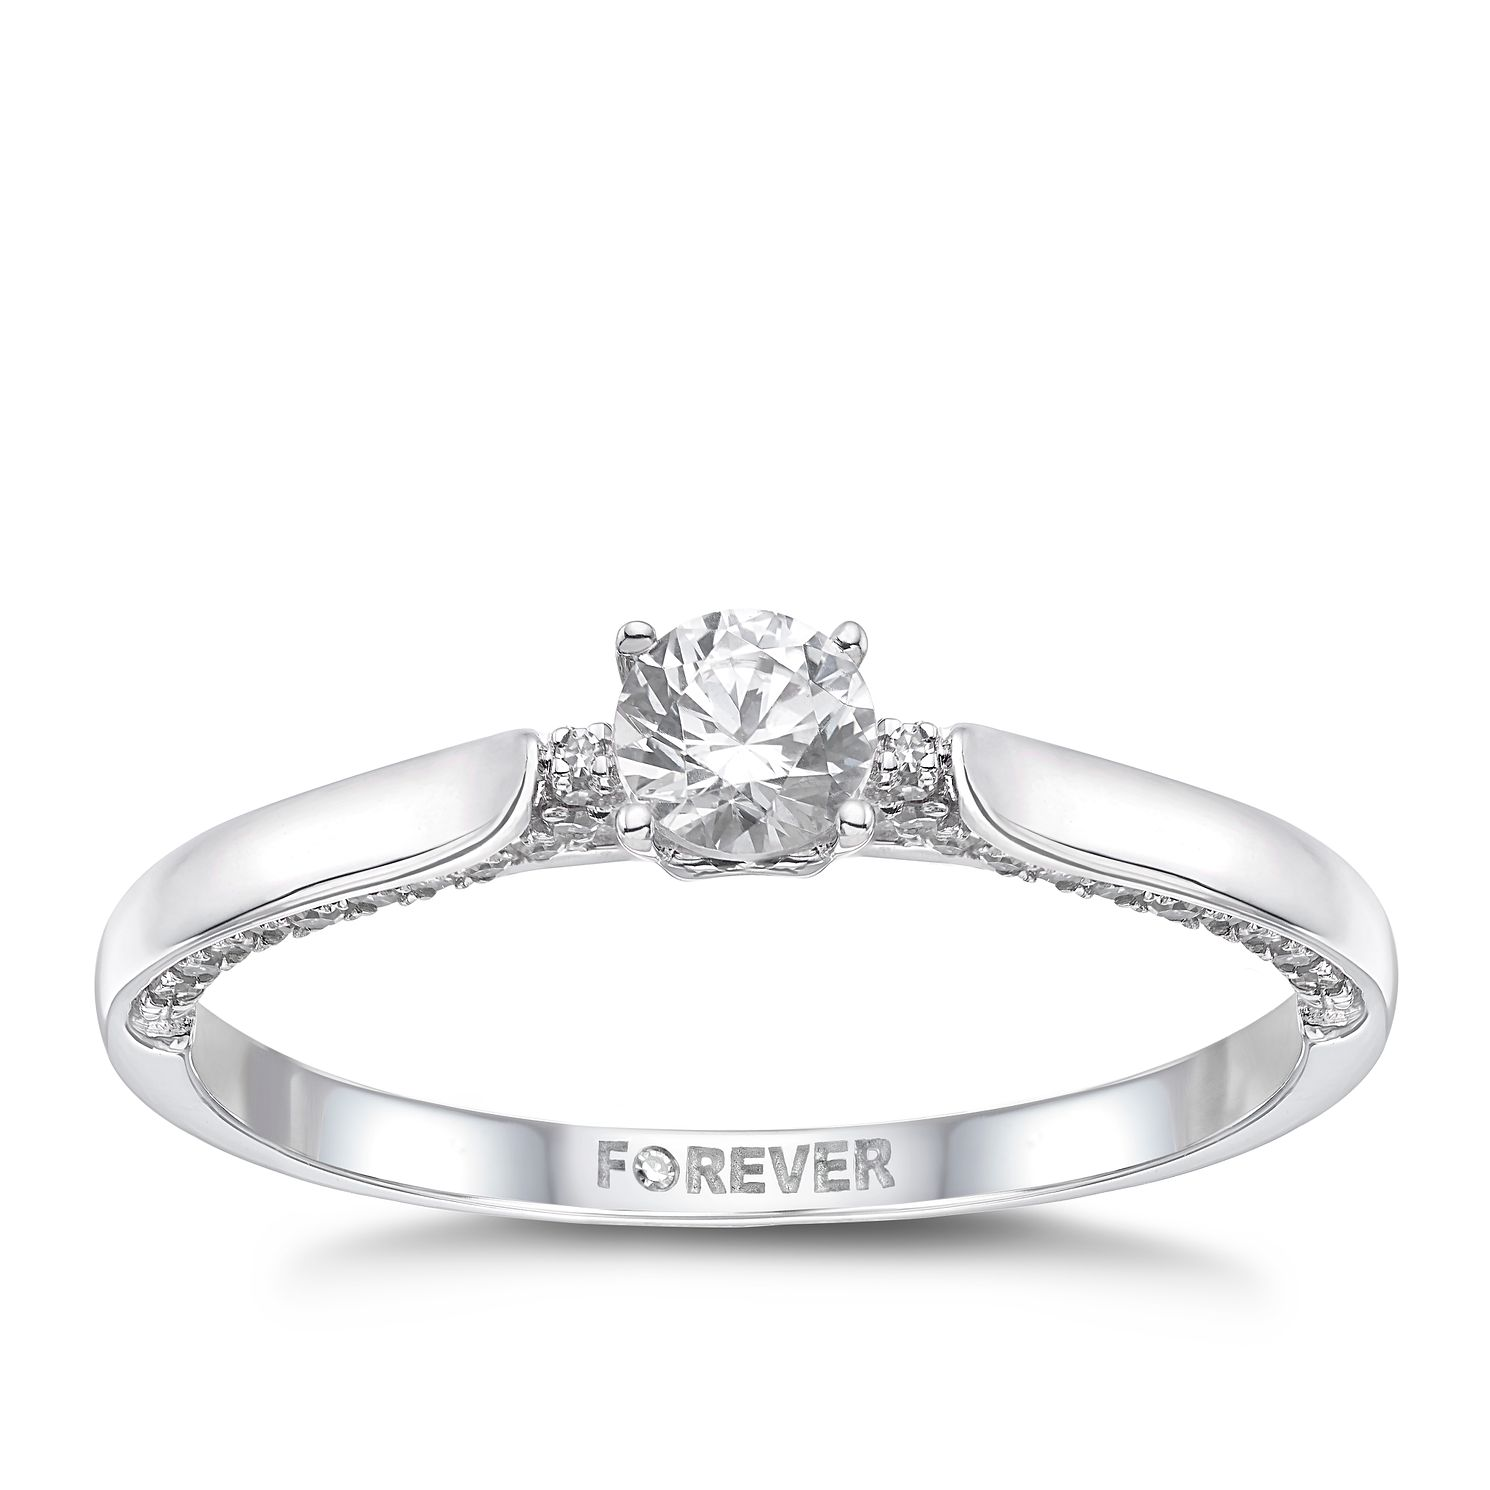 18ct White Gold 1/2ct Forever Diamond Ring - Product number 4723228